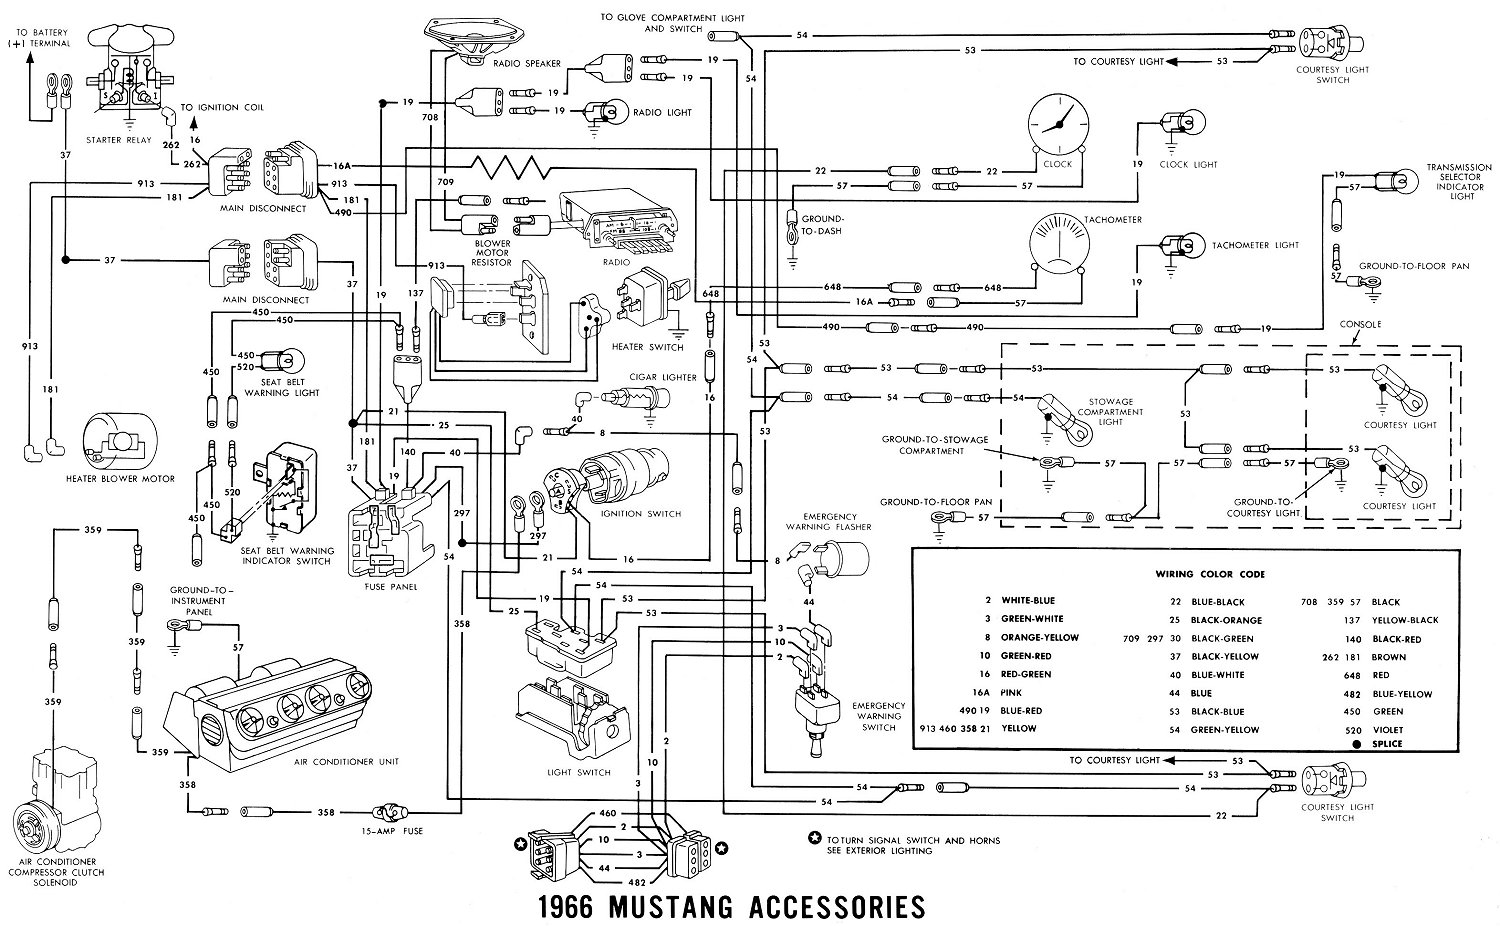 66acces1 1966 mustang wiring diagram 1966 mustang radio diagram \u2022 free 2000 C5 Corvette Wiring Diagram at gsmx.co